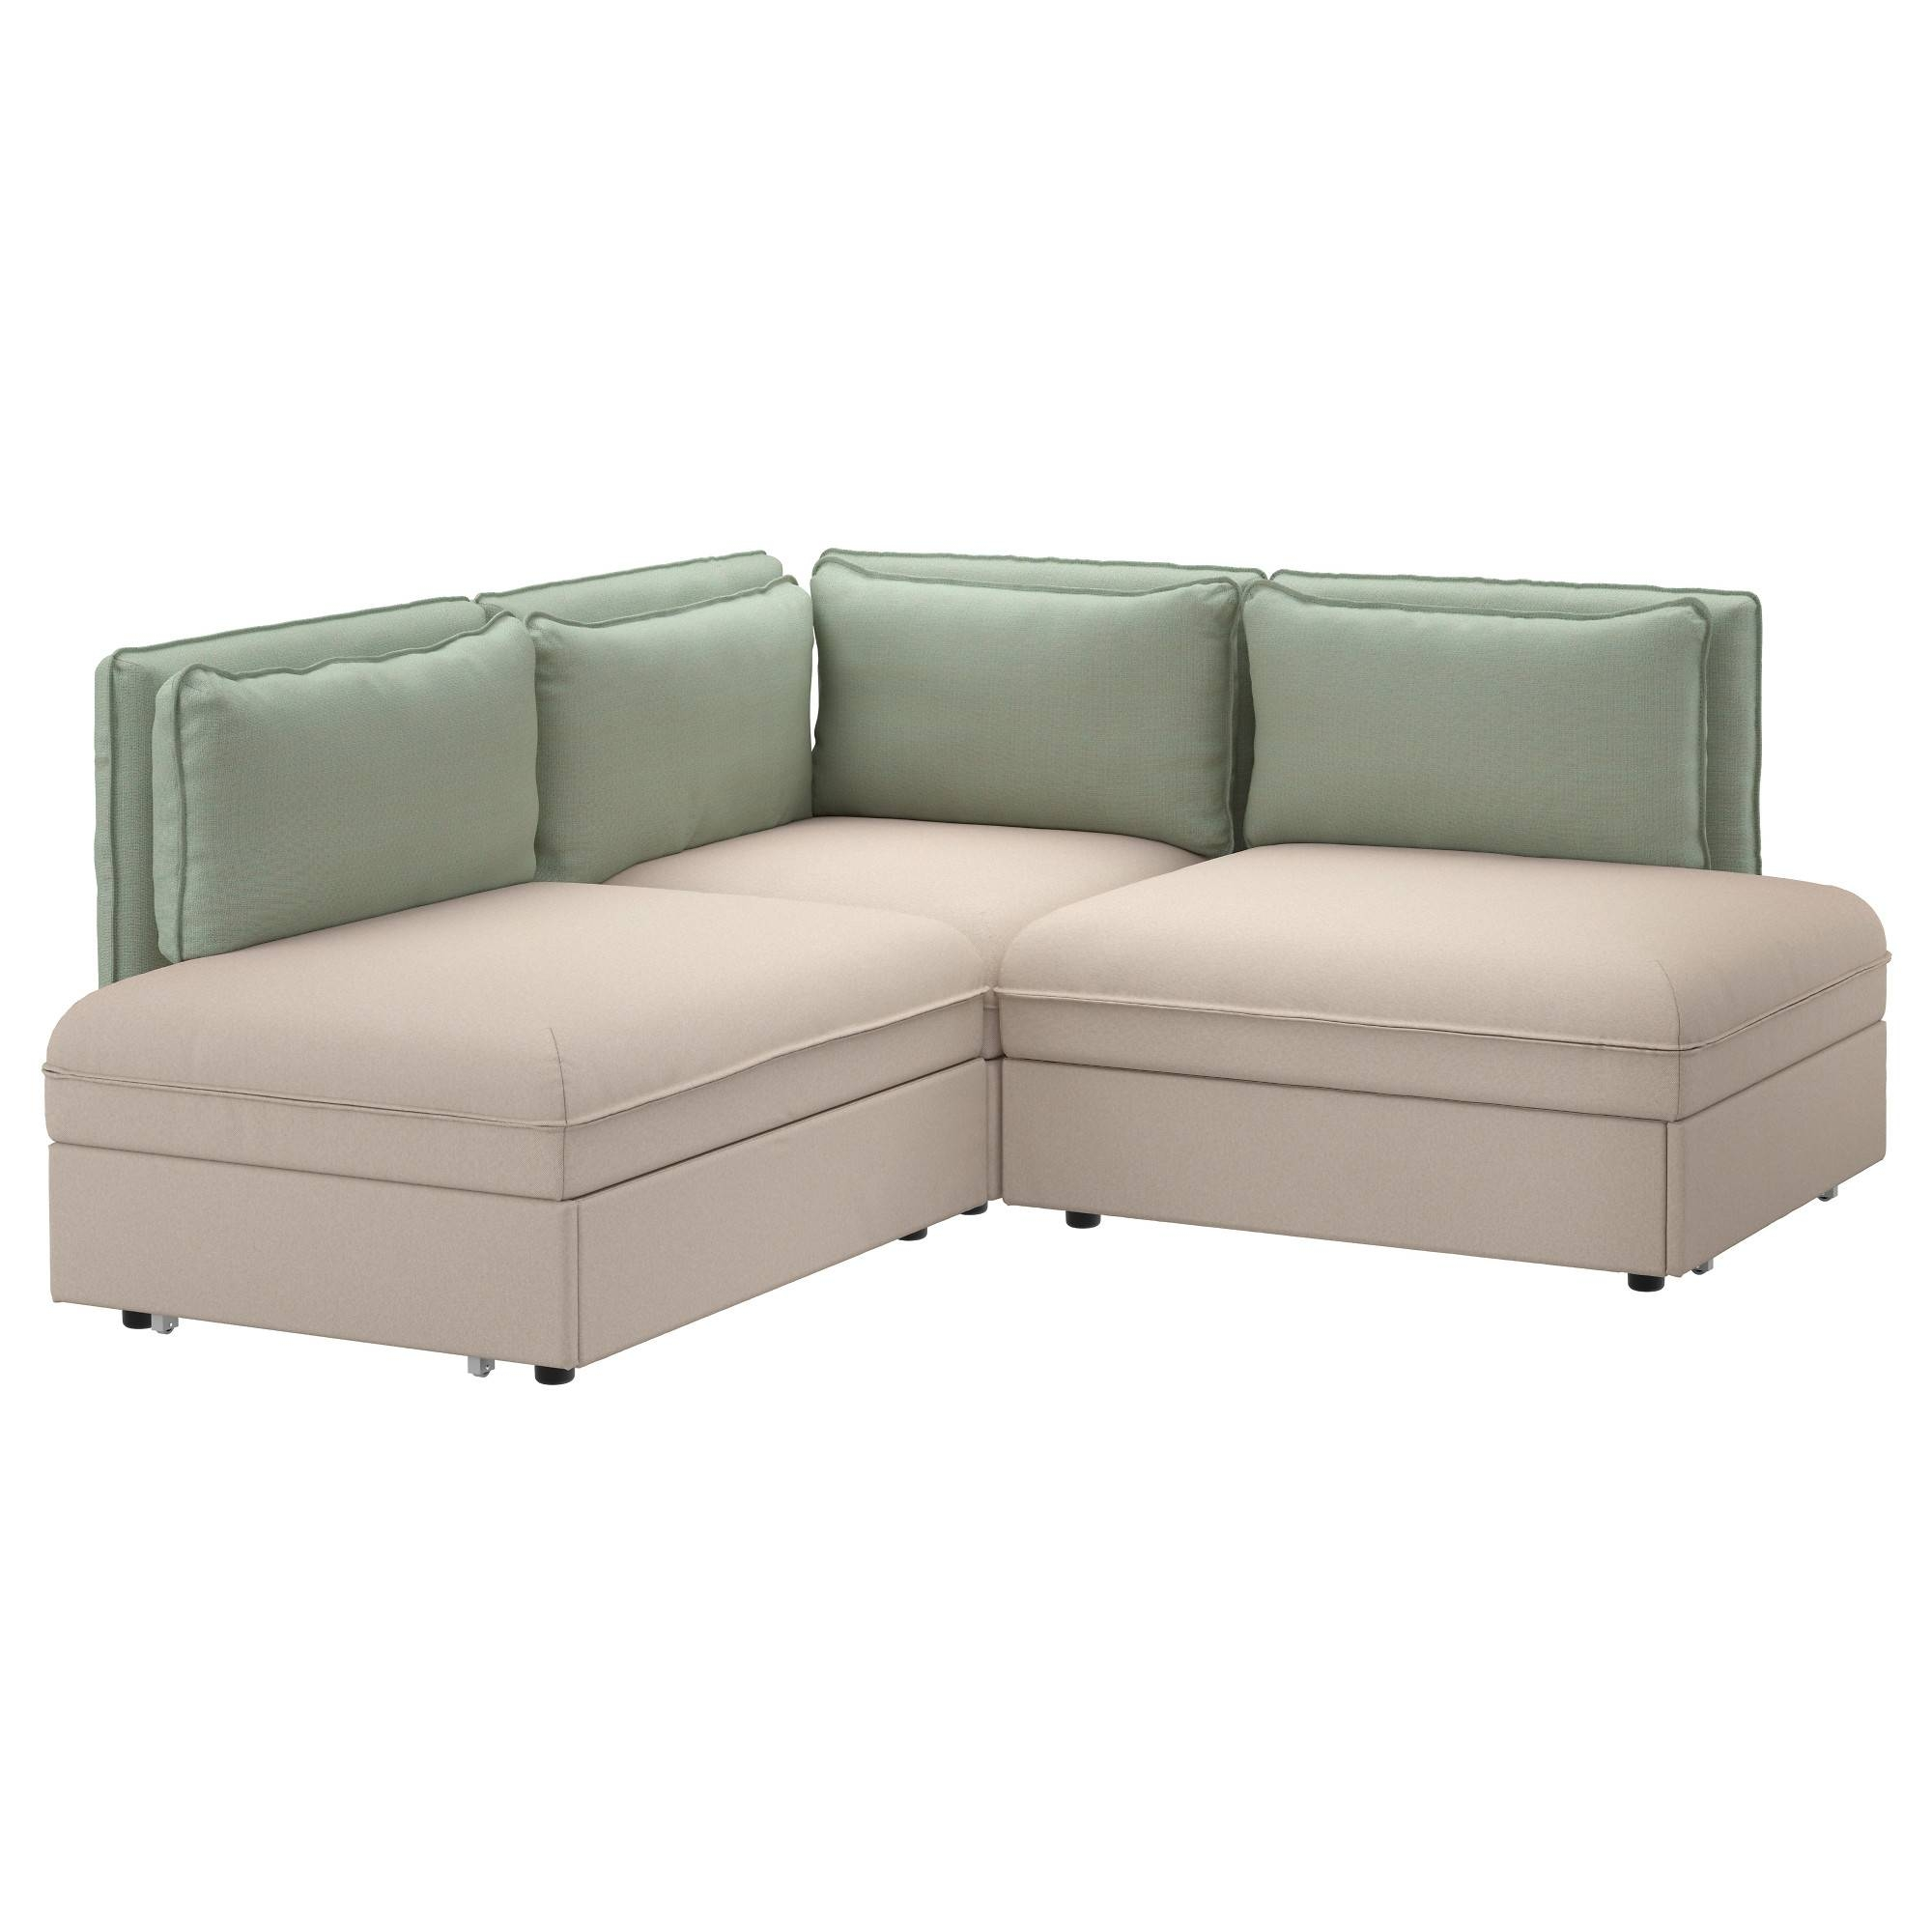 Sofa Beds & Futons – Ikea Regarding Sectional Sofa Bed With Storage (View 18 of 25)